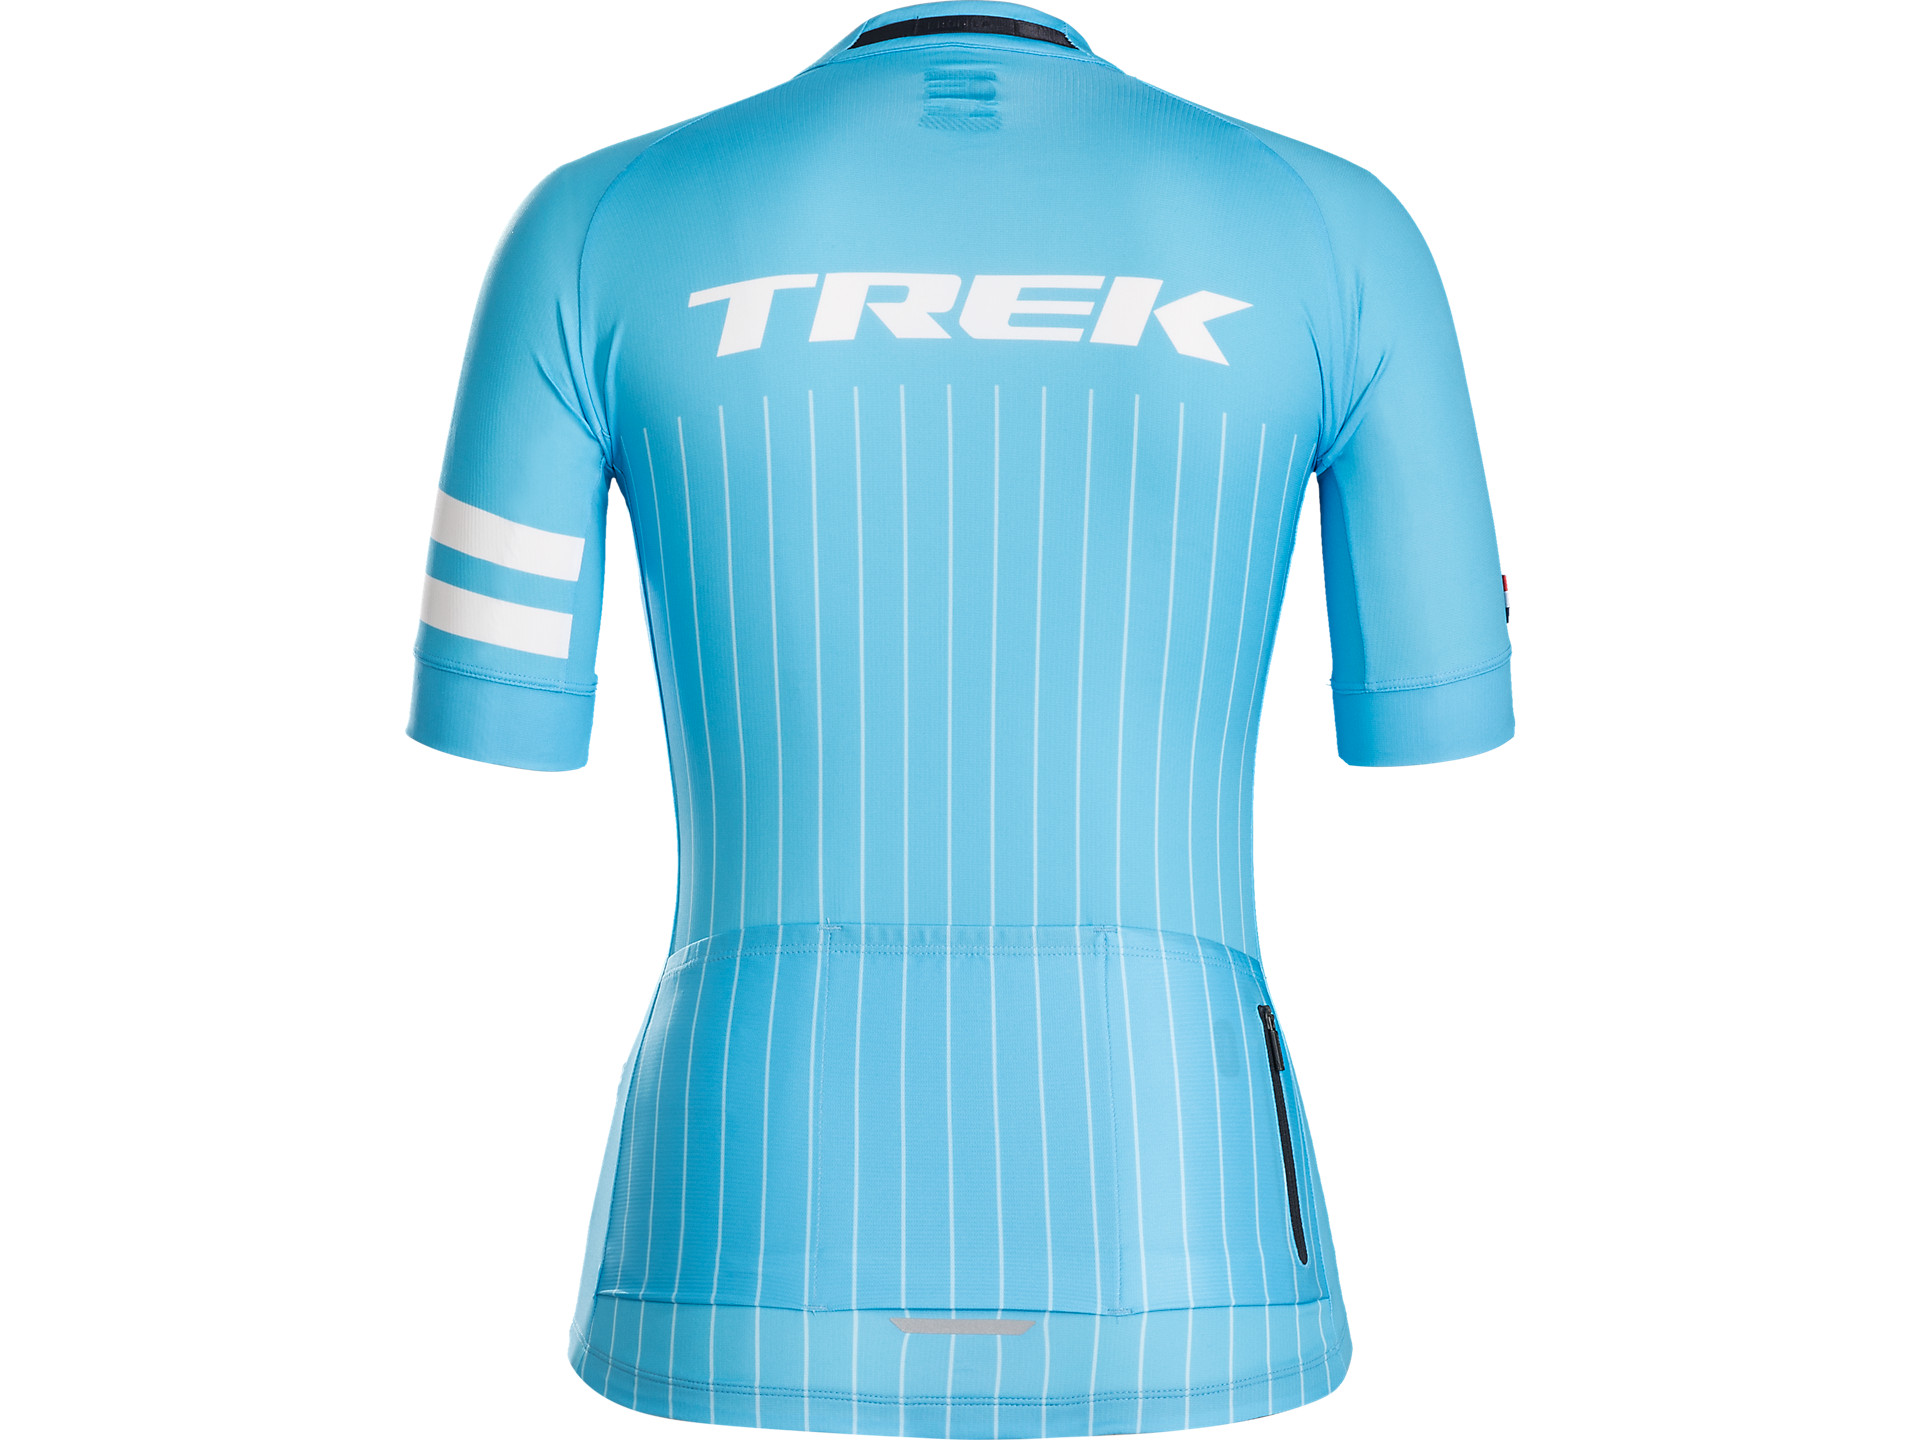 Bontrager Anara LTD Women s Cycling Jersey. Overview  Features  Tech specs   Sizing   fit  Reviews  FAQs  Buy. Prev Next 4d1a2fb55